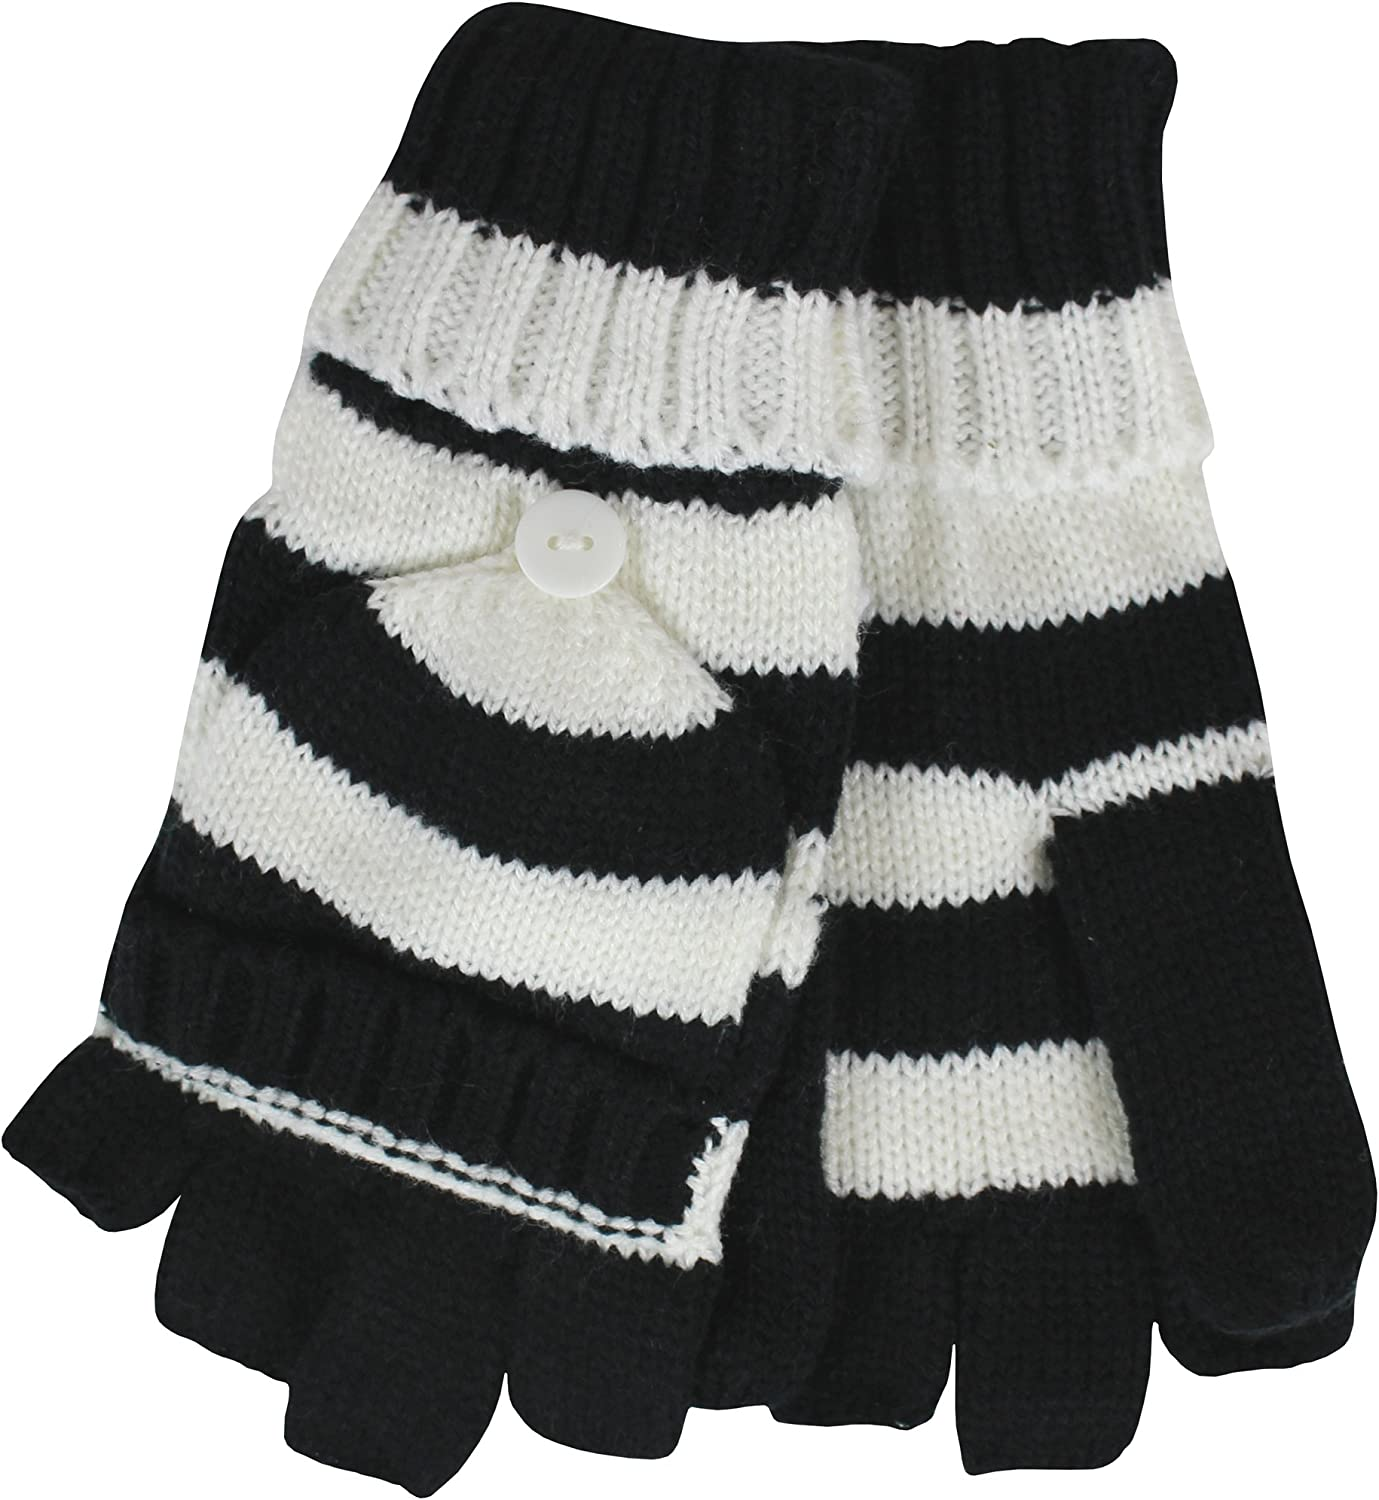 Ladies Winter Thermal Knit Magic 2 in 1 Combo Fingerless Gloves /& Mittens